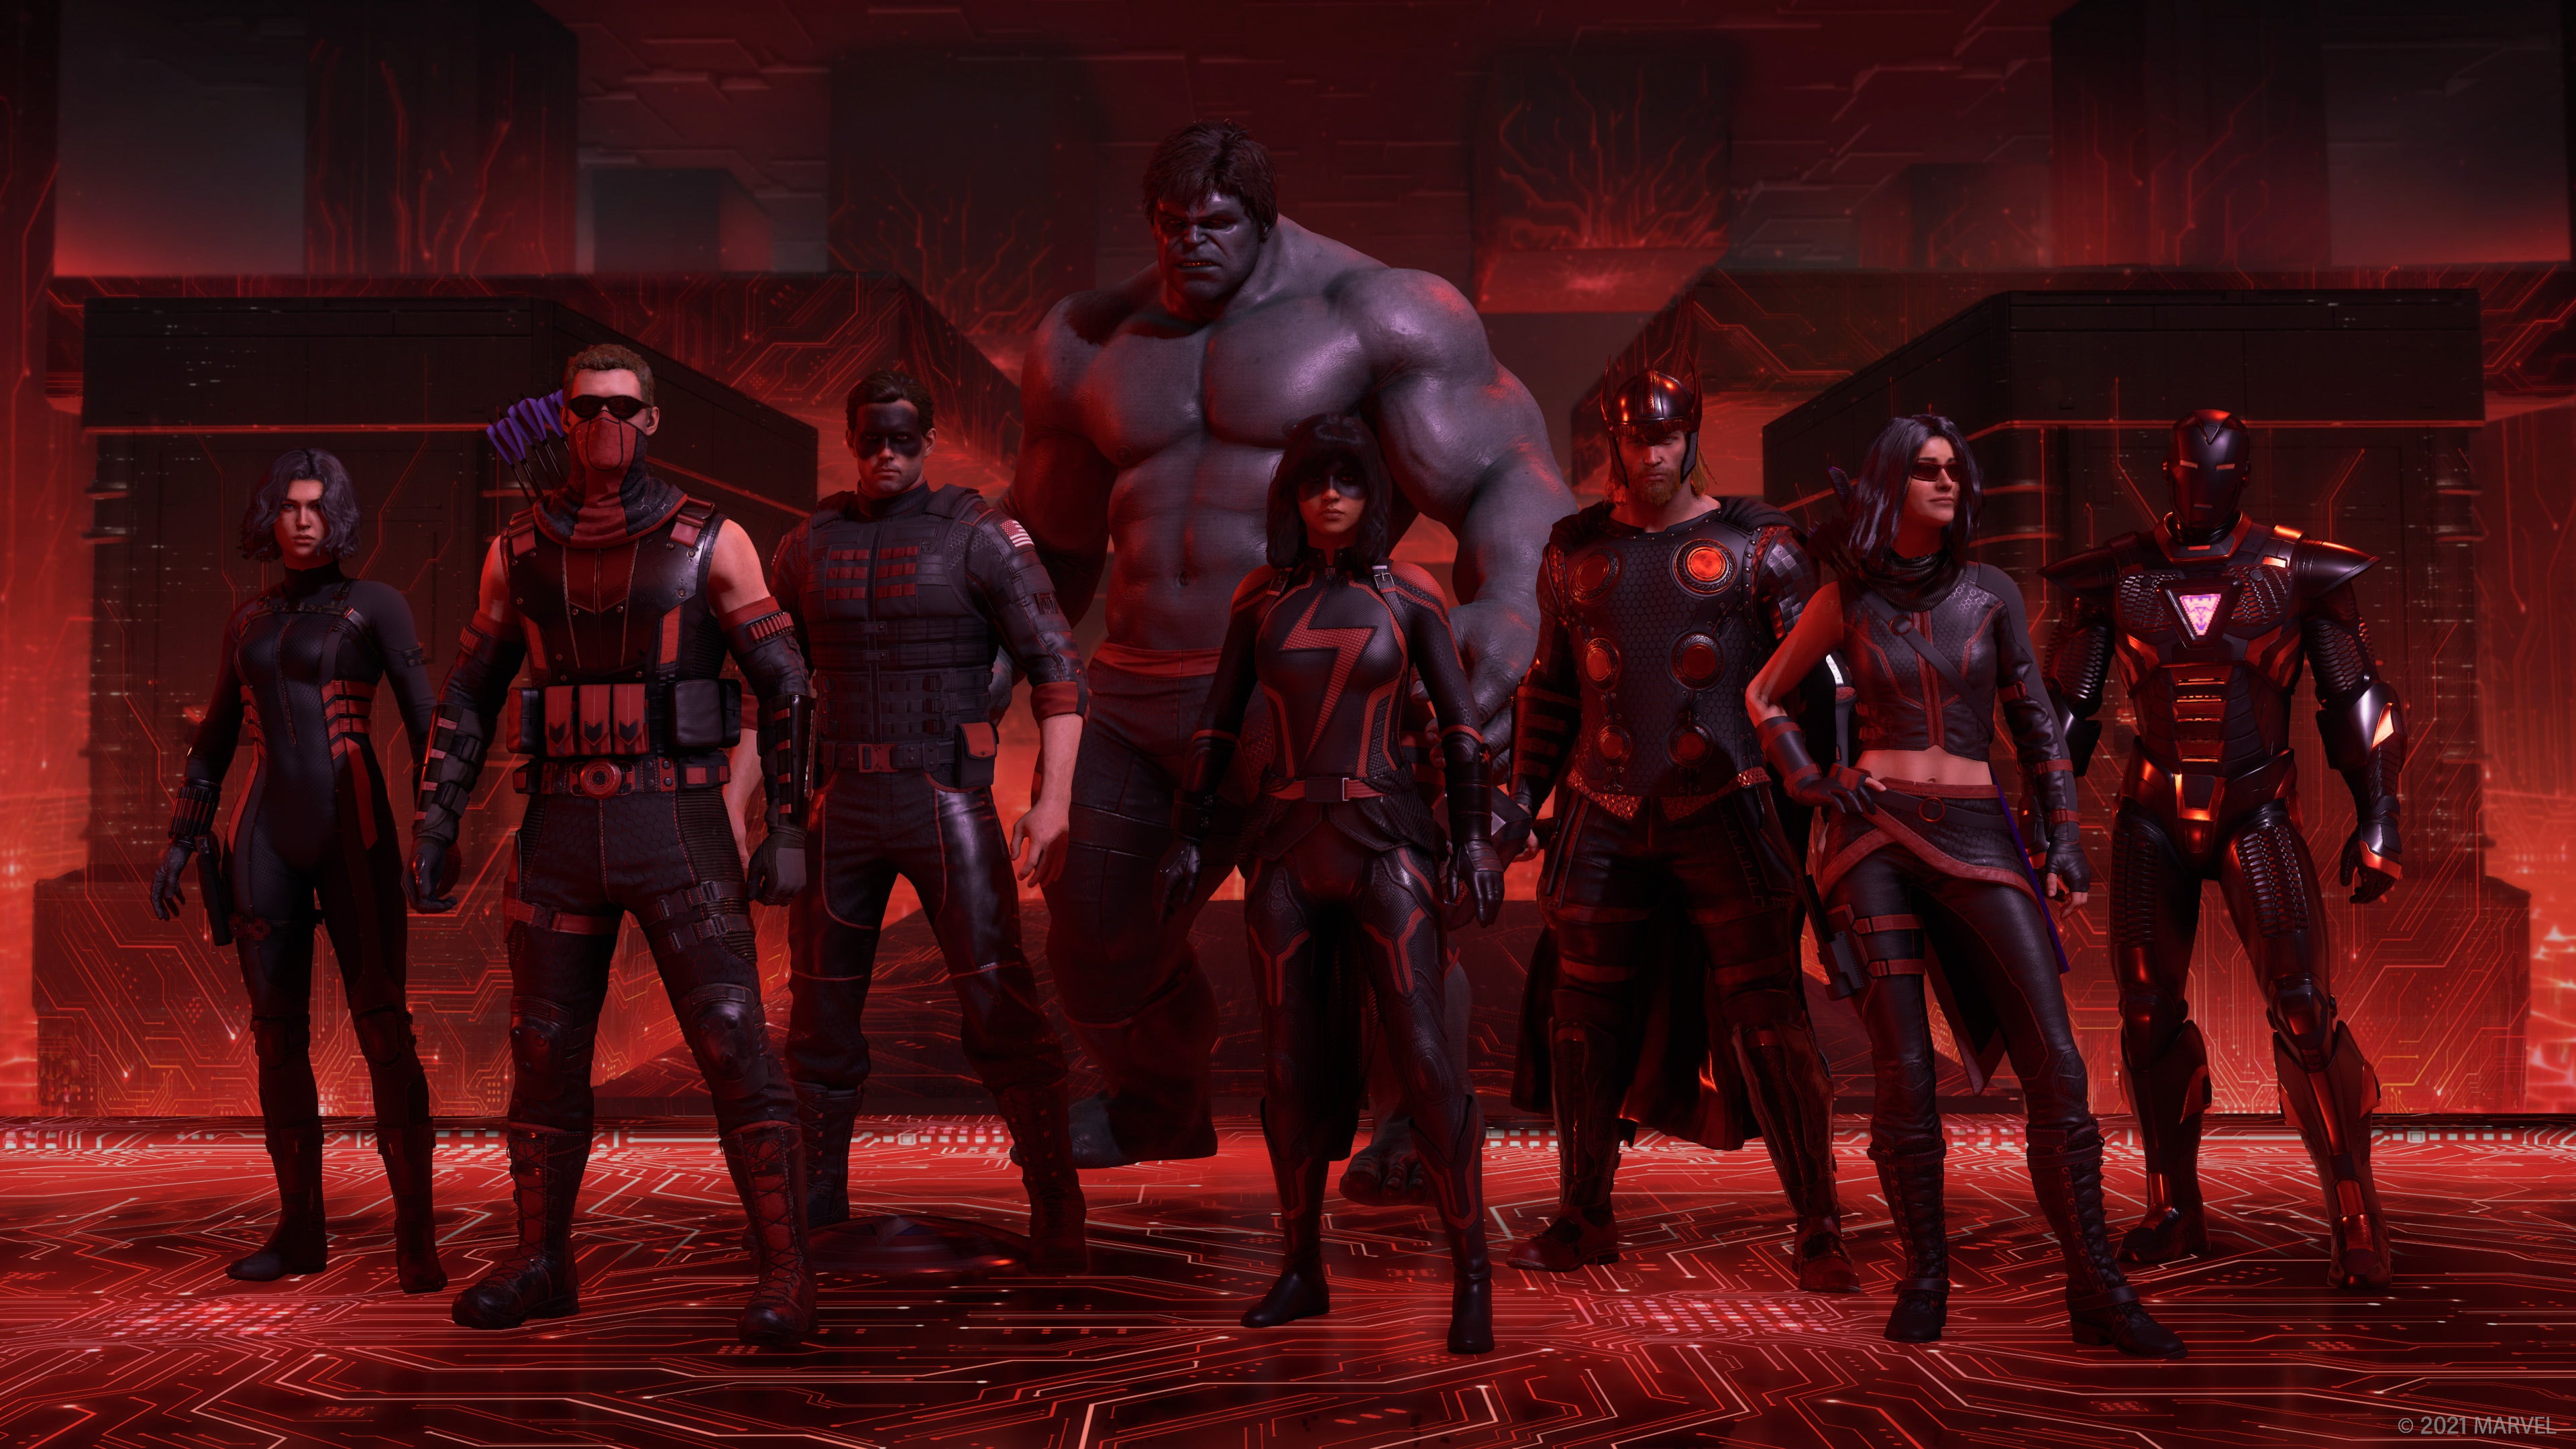 The full roster of Heroes poses in the Red Room in their black and red Red Room outfits.